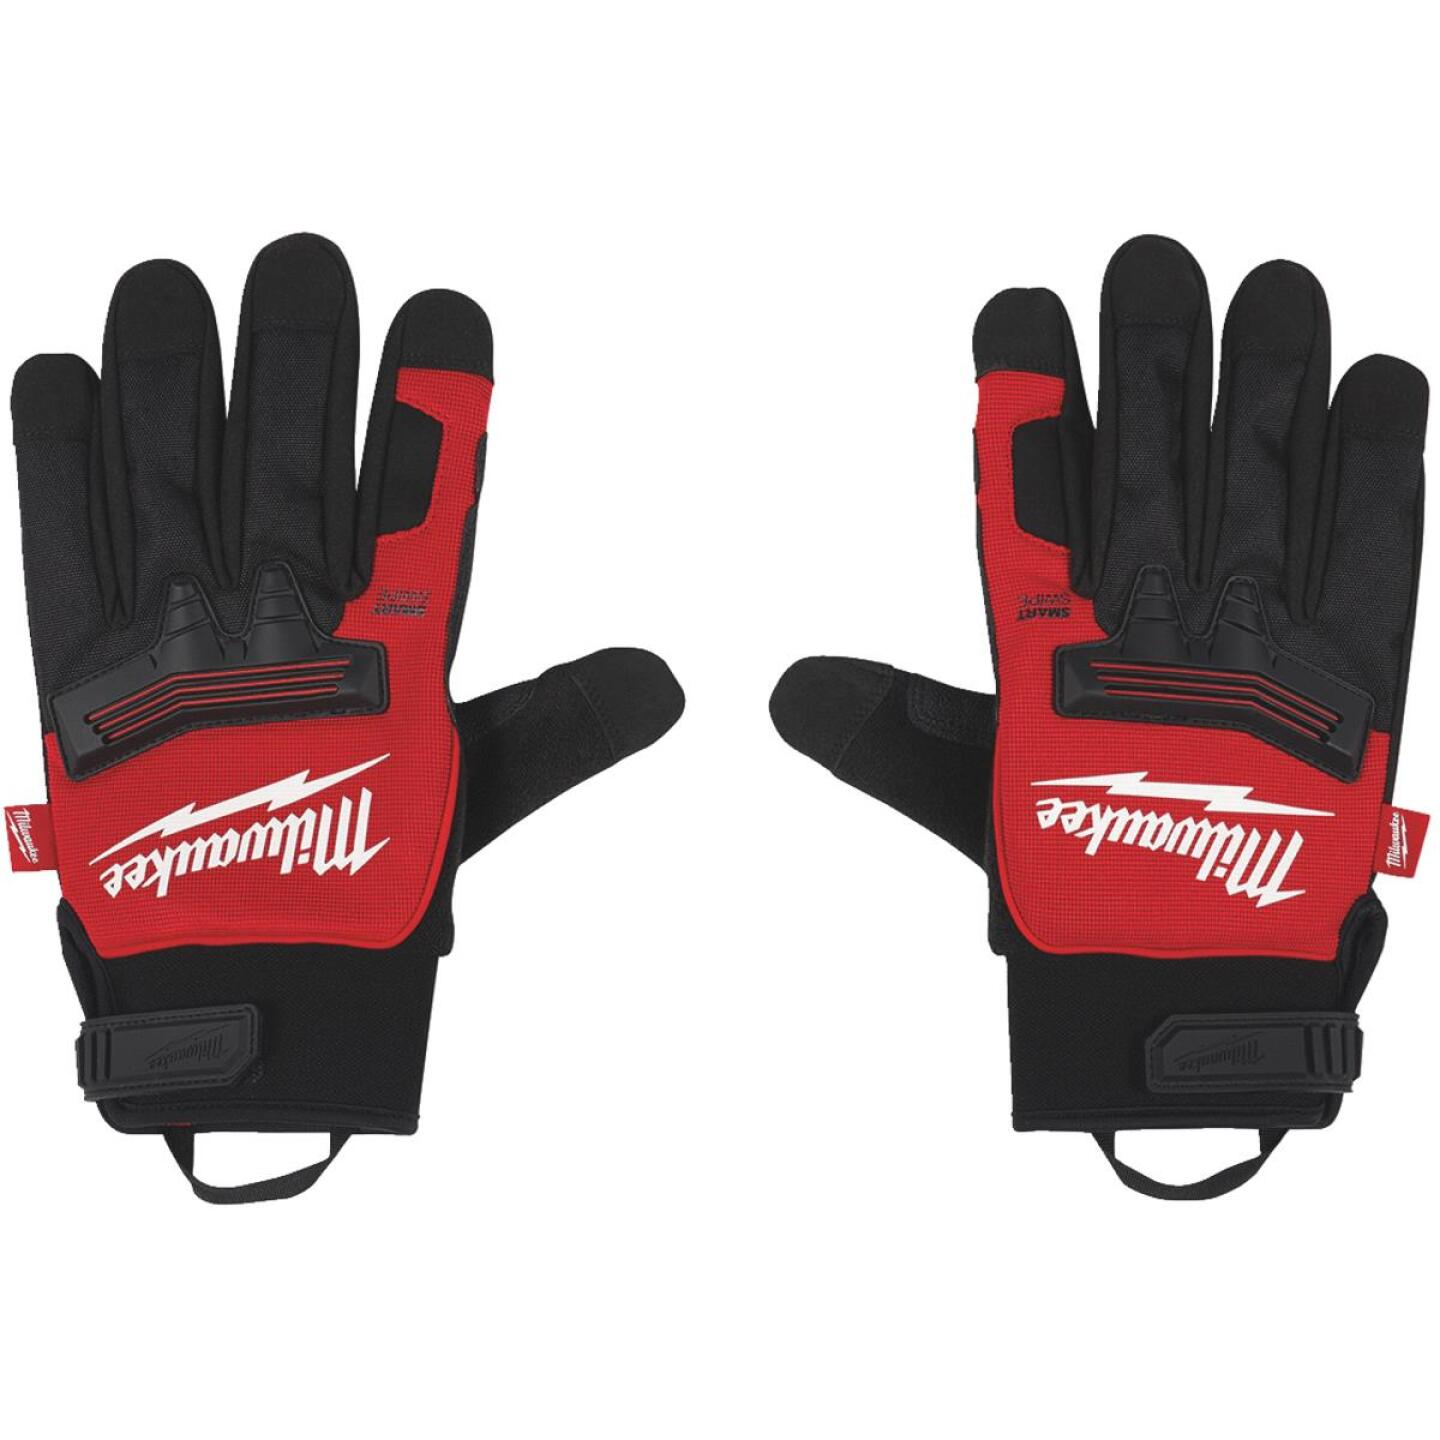 Milwaukee Men's Large Synthetic Winter Demolition Glove Image 2